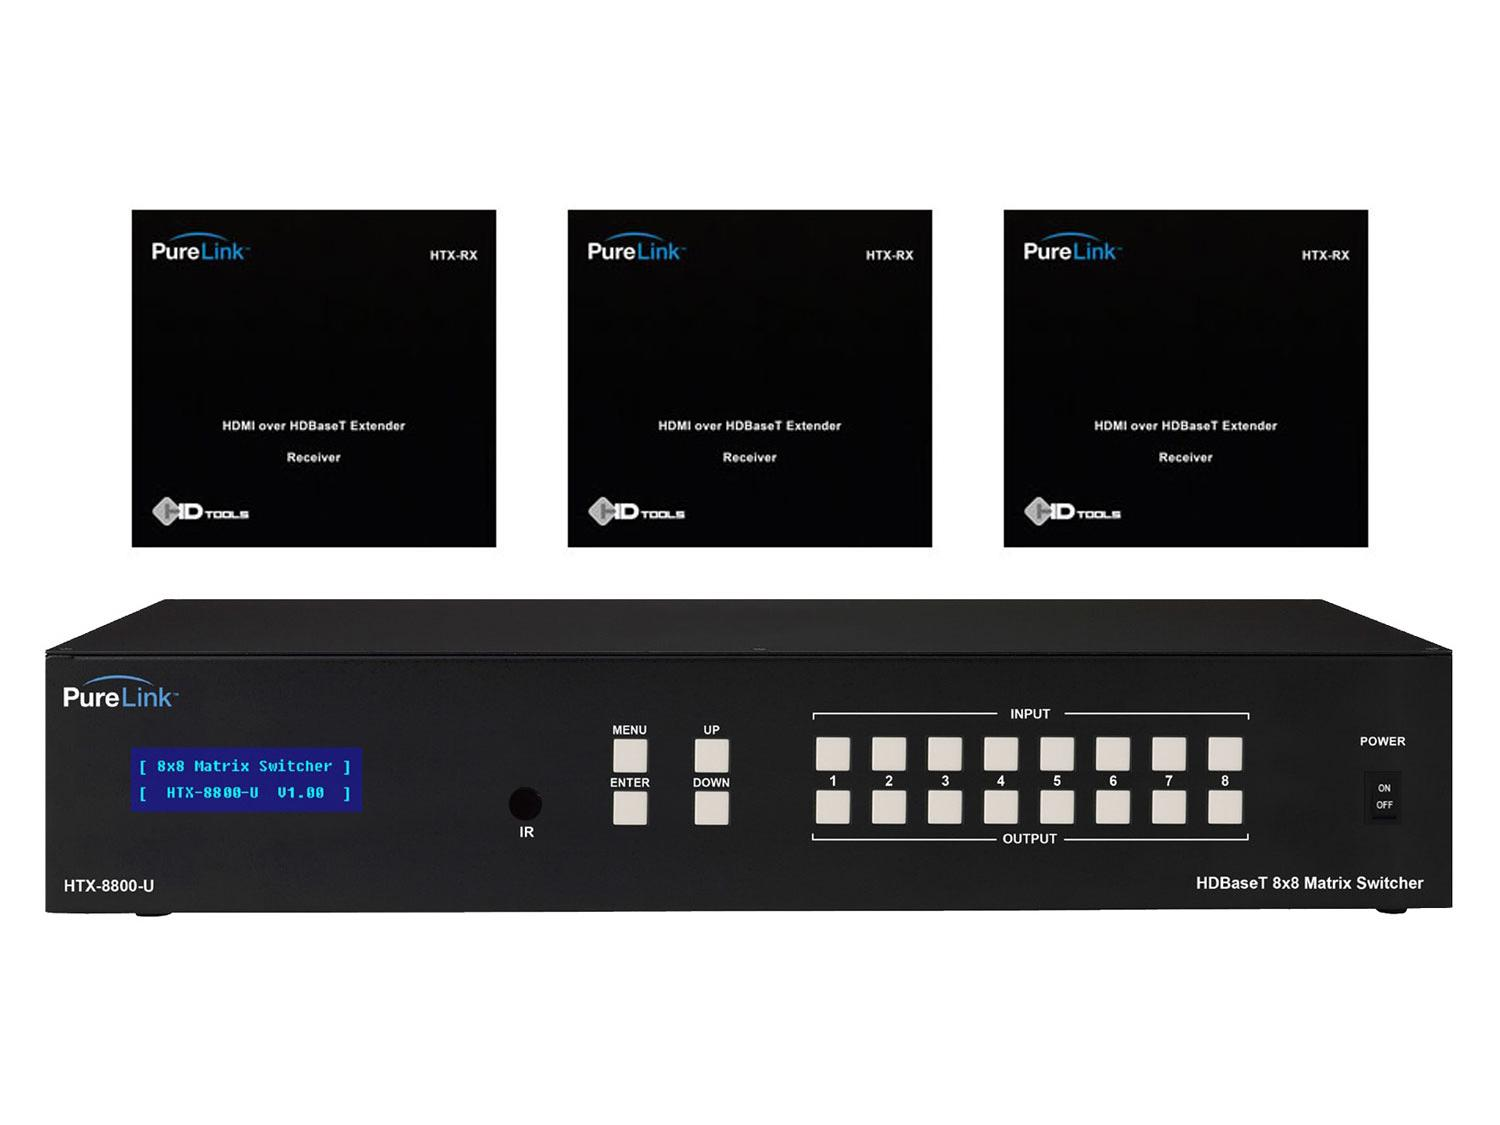 HTX-8800-U-KIT3 HTX-8800-U HDMI Switcher w (3) HTX Extender (Rx) Kit by PureLink